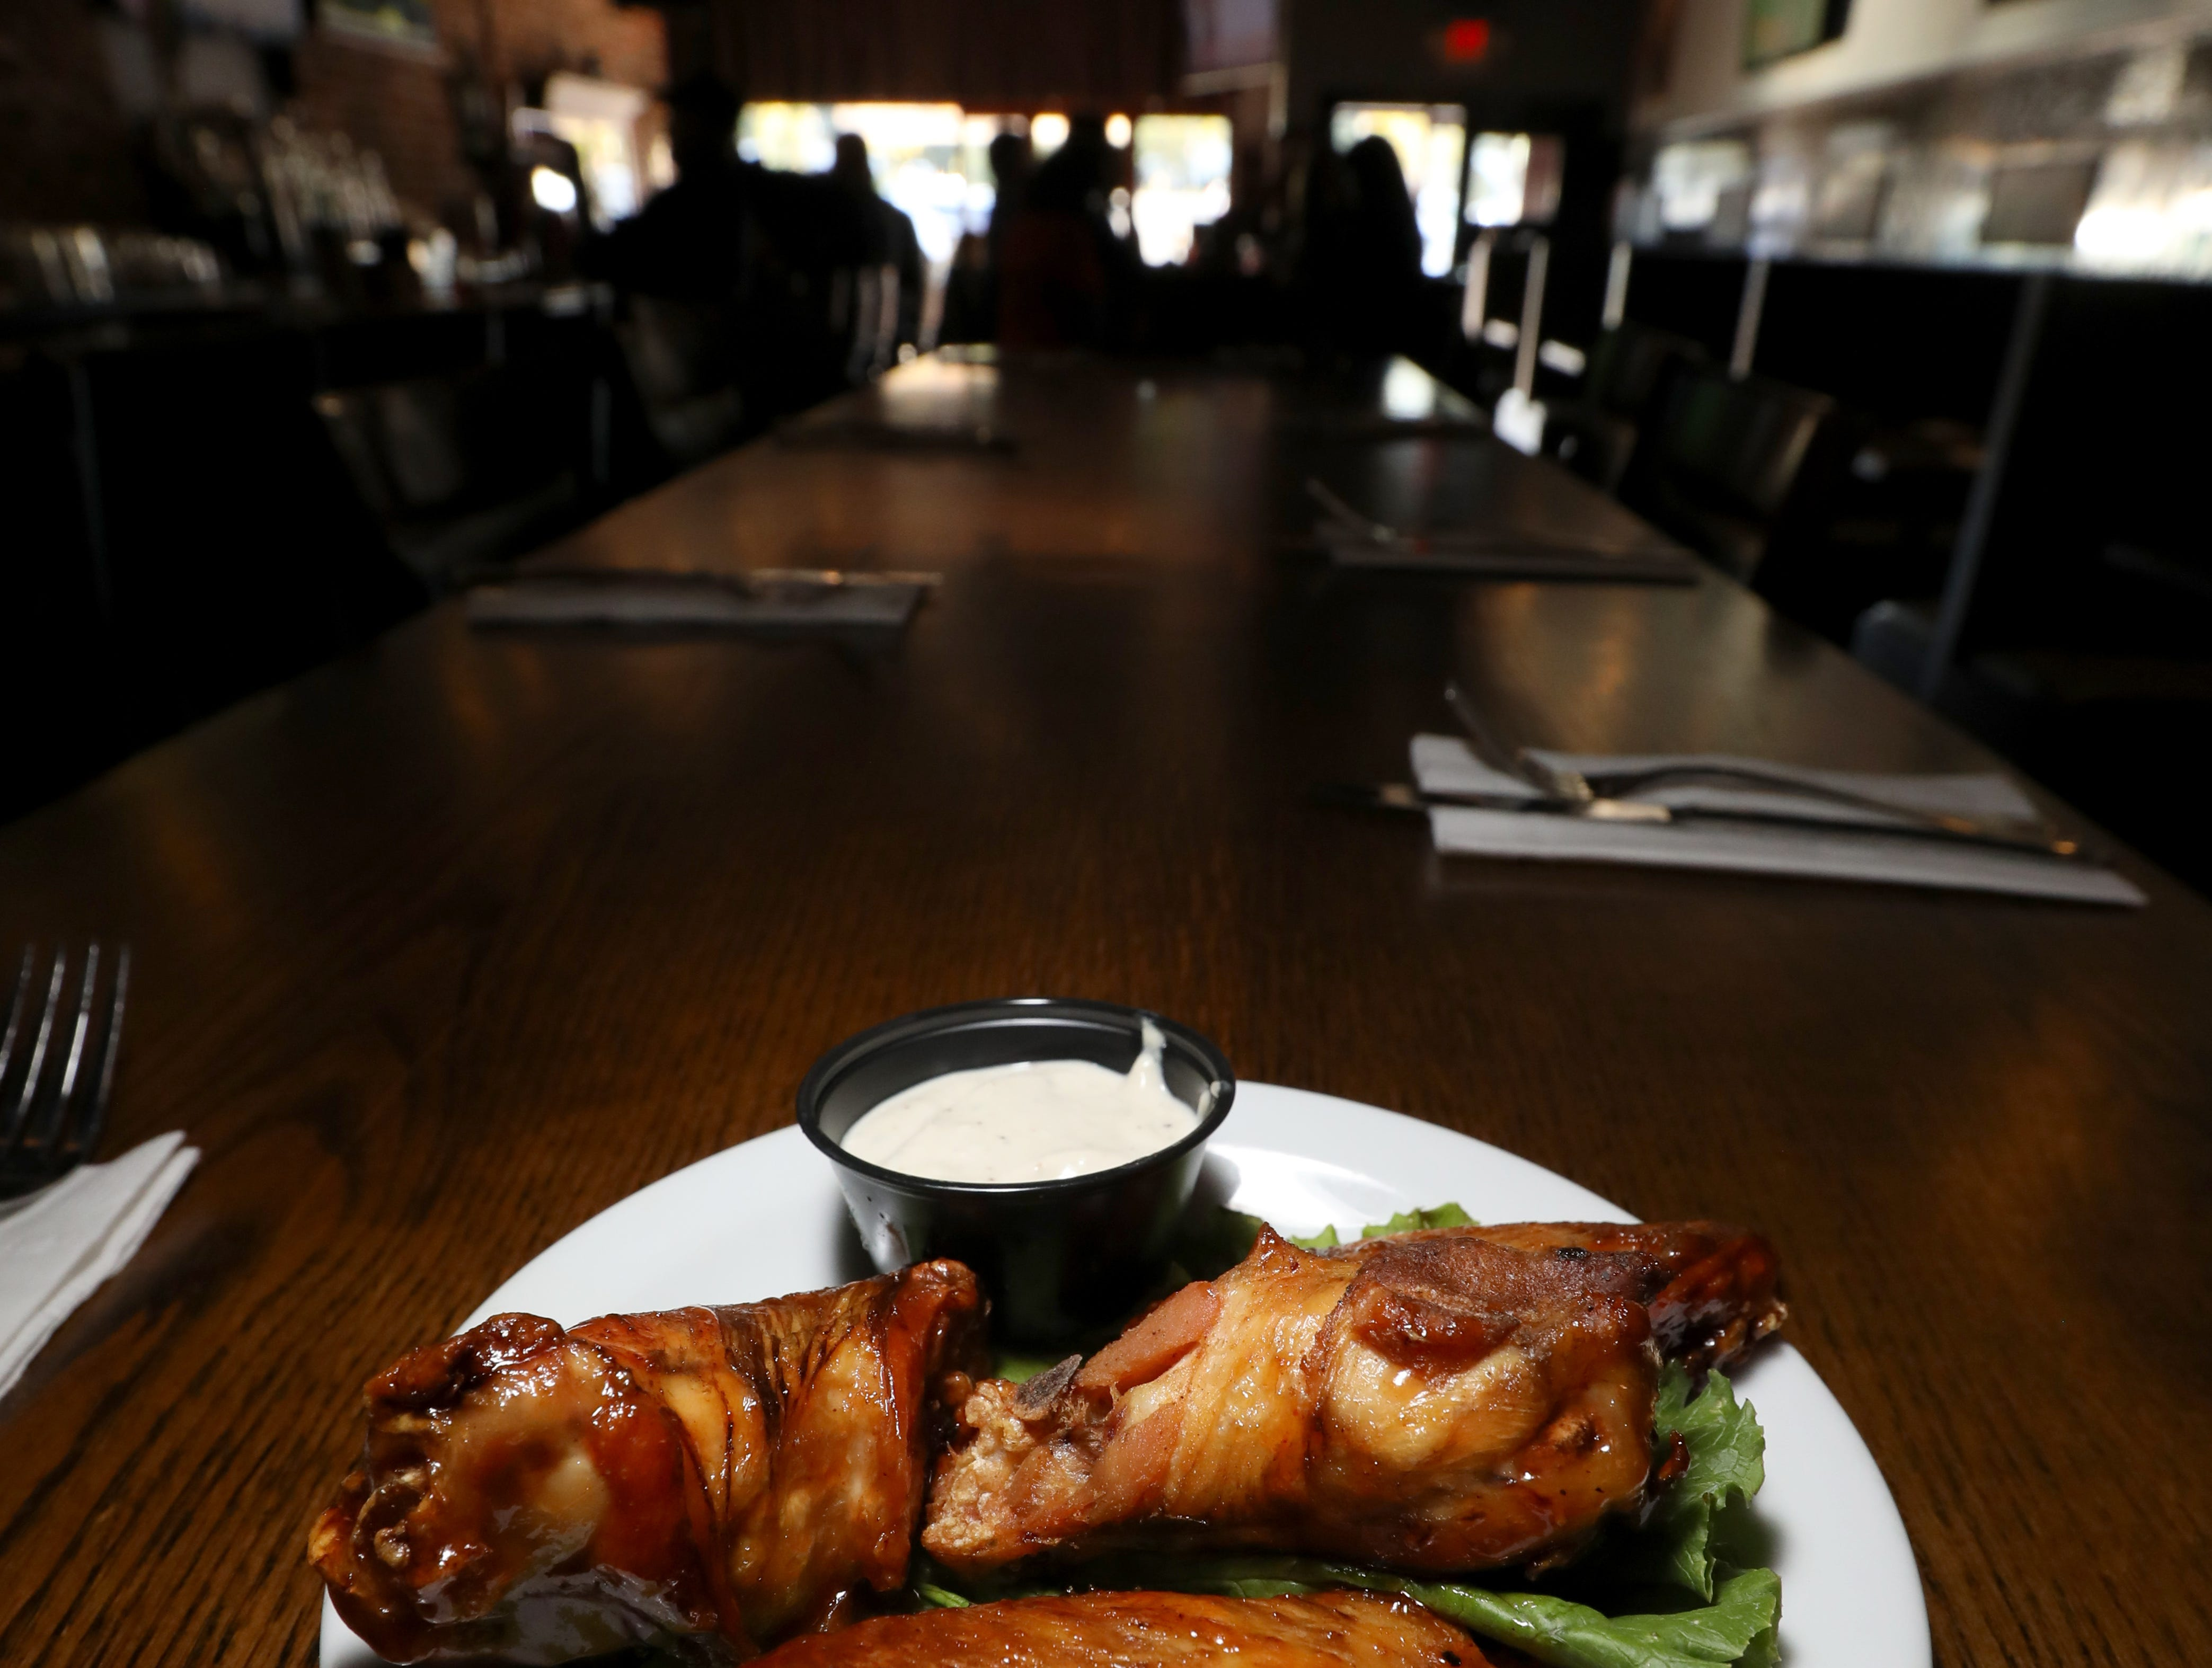 Smoked wings with black cherry barbecue sauce at the Foggy Bottom Tavern in New City Oct. 12, 2018.